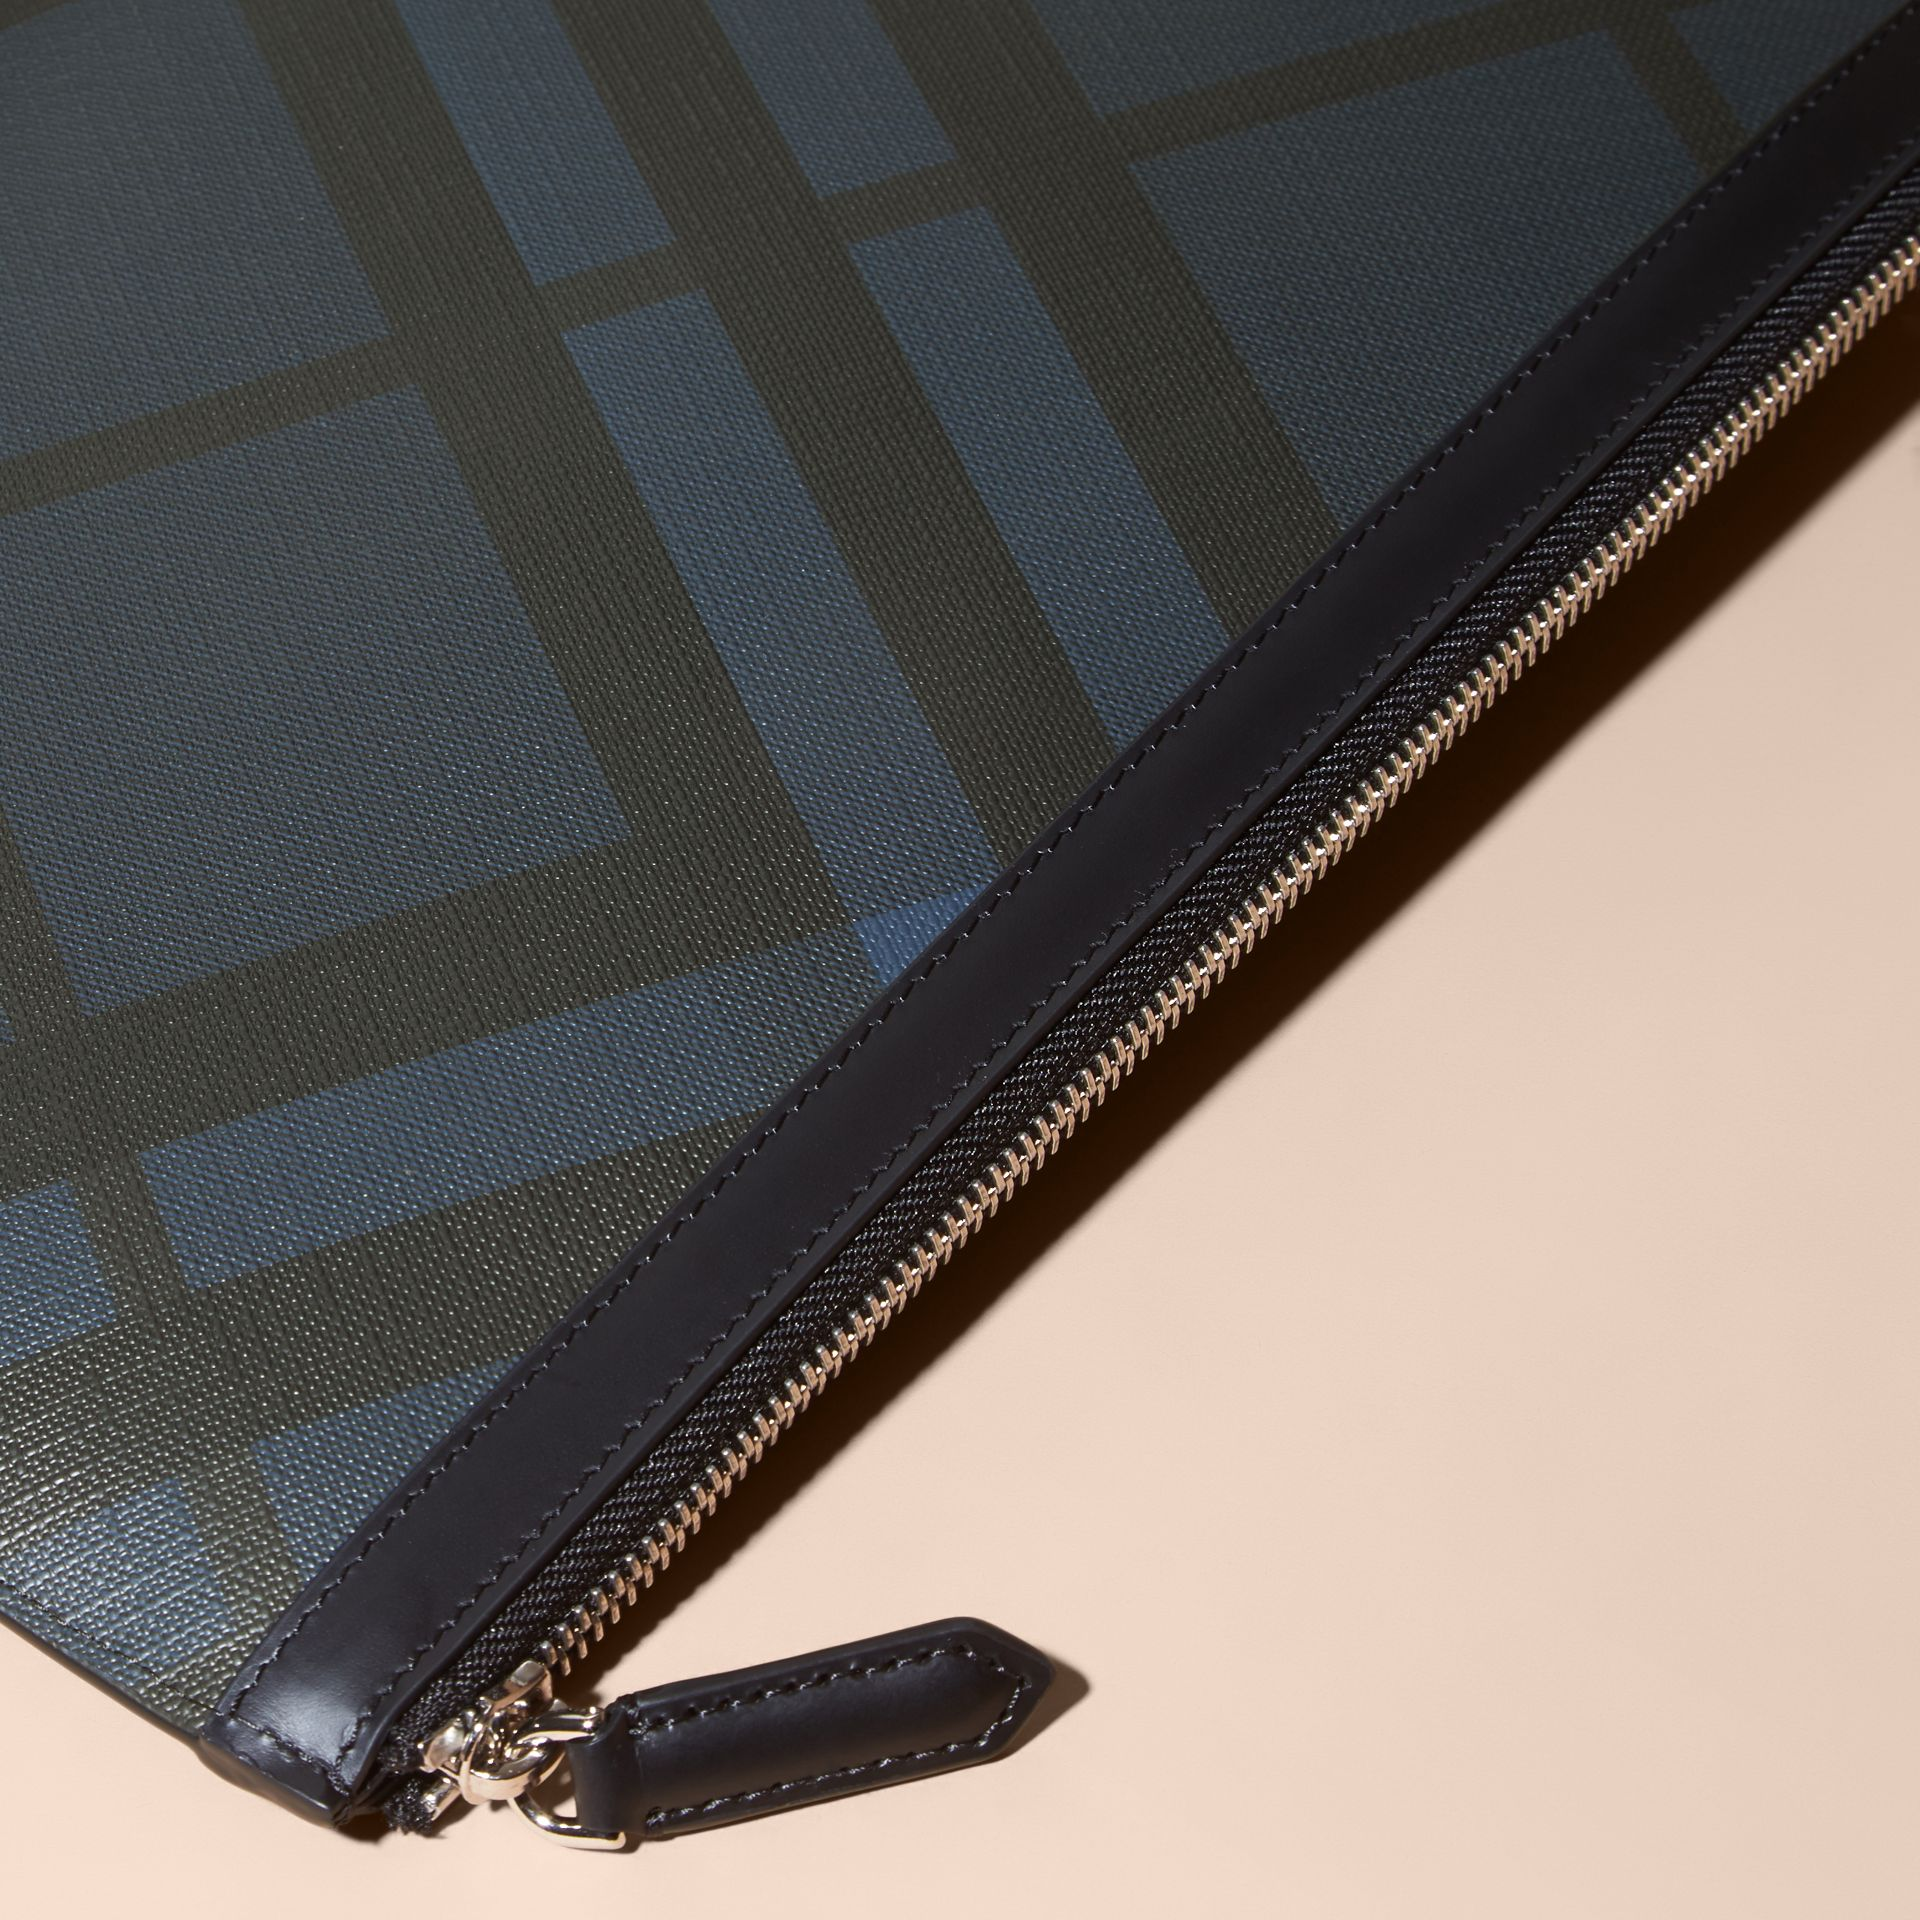 Zipped London Check Pouch in Navy/black - Men | Burberry Australia - gallery image 3